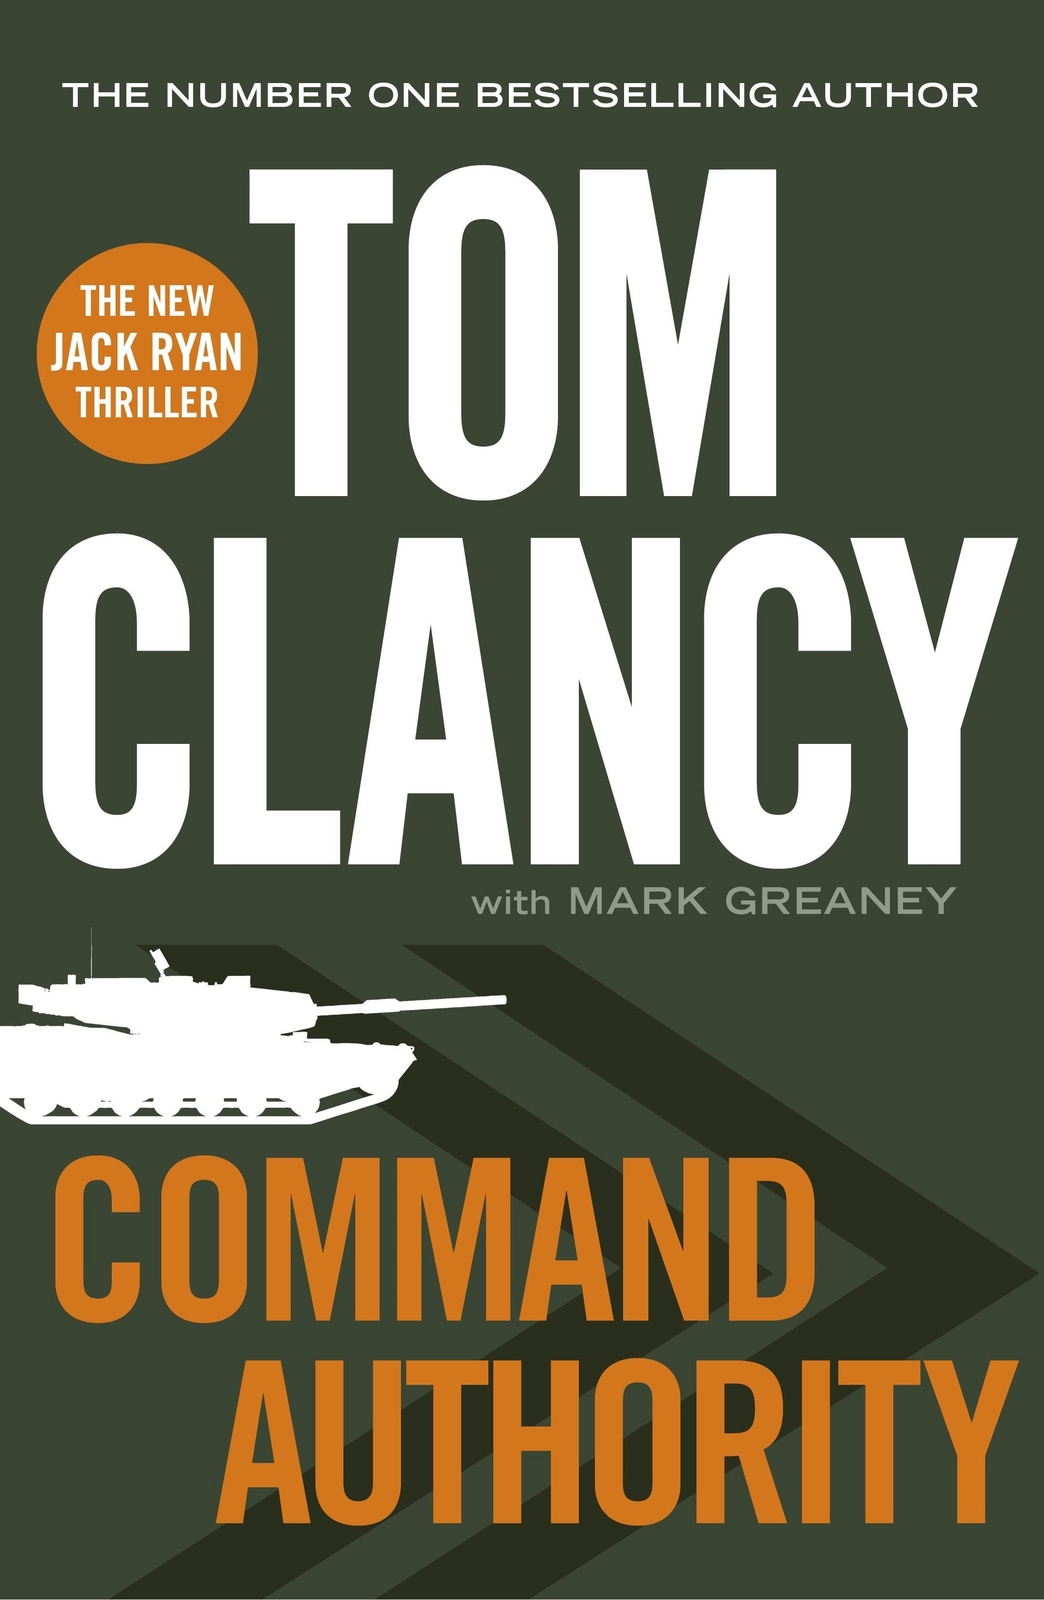 an analysis of the main character in the jack ryan novel series by tom clancy